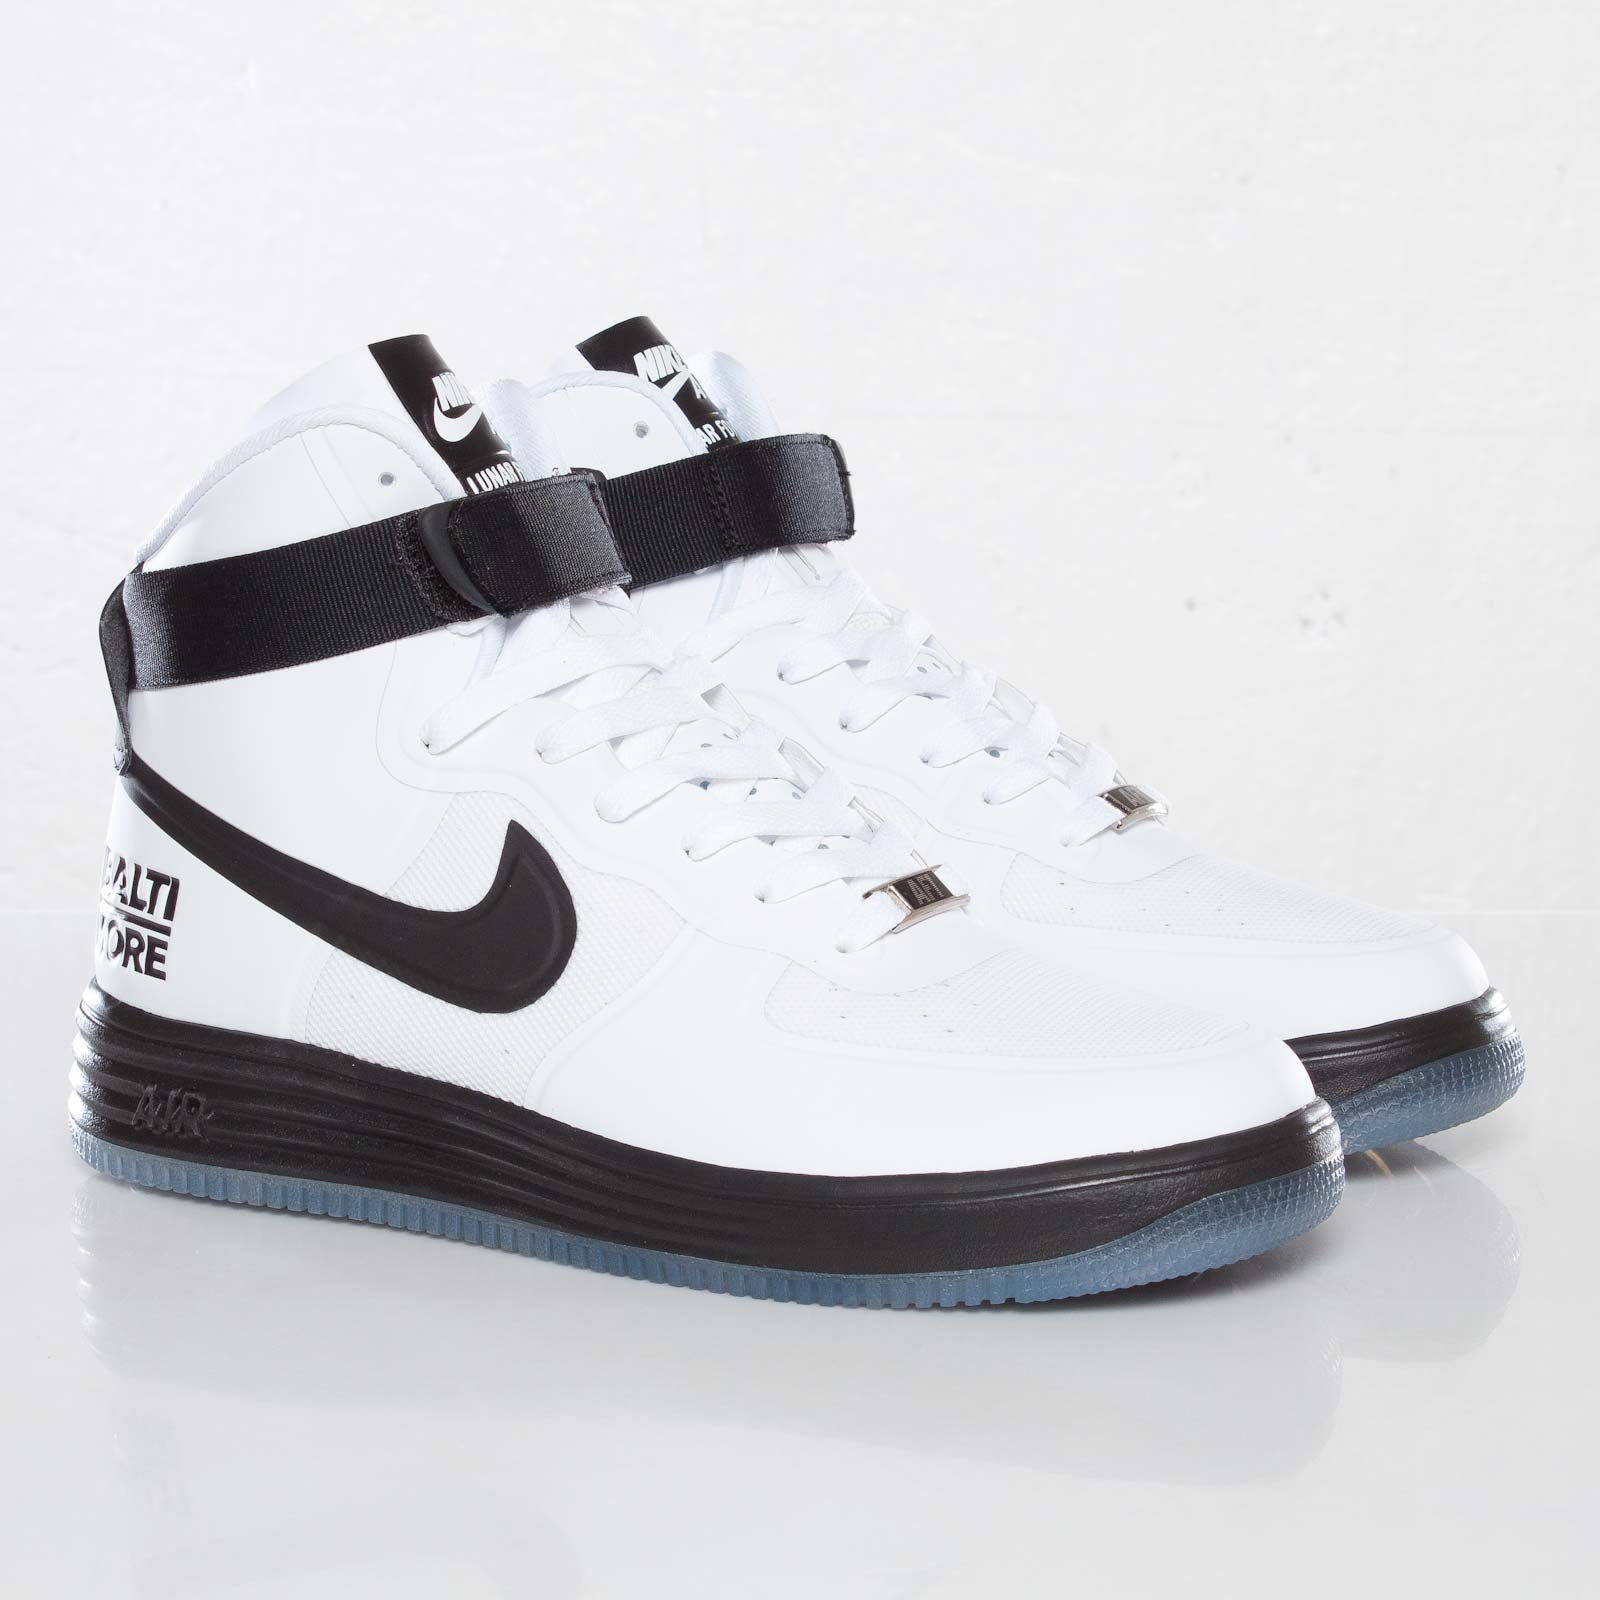 the latest d0505 af6a3 Nike Lunar Force 1 Hyp Hi City QS